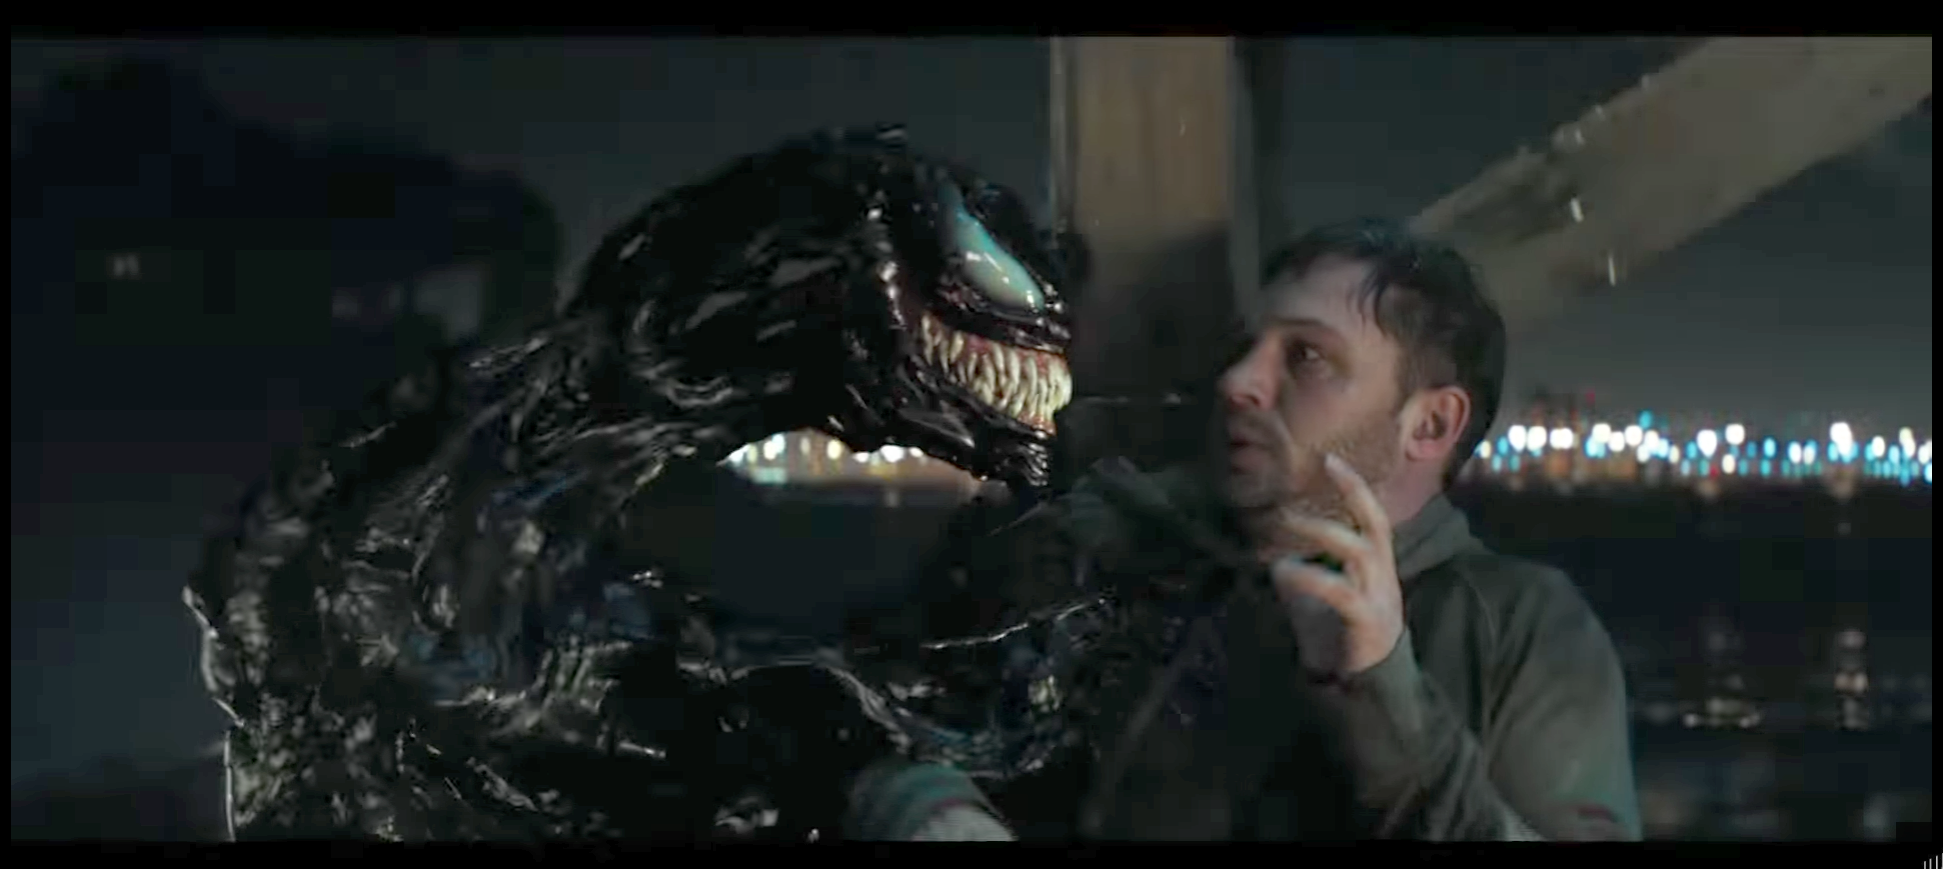 The Symbiote and Eddie Brock: The Conversation